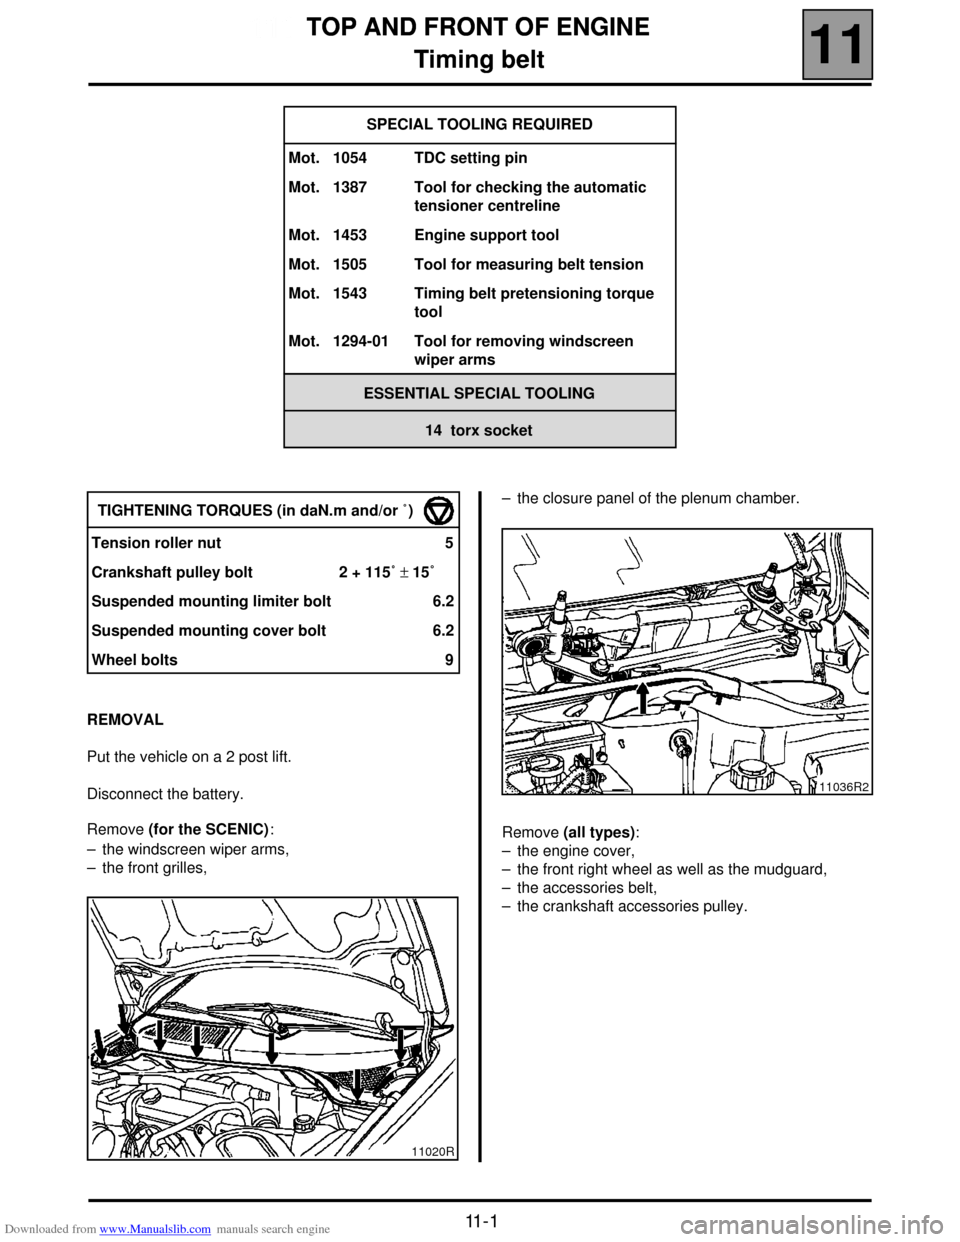 RENAULT SCENIC 2000 J64 / 1.G Technical Note 3426A